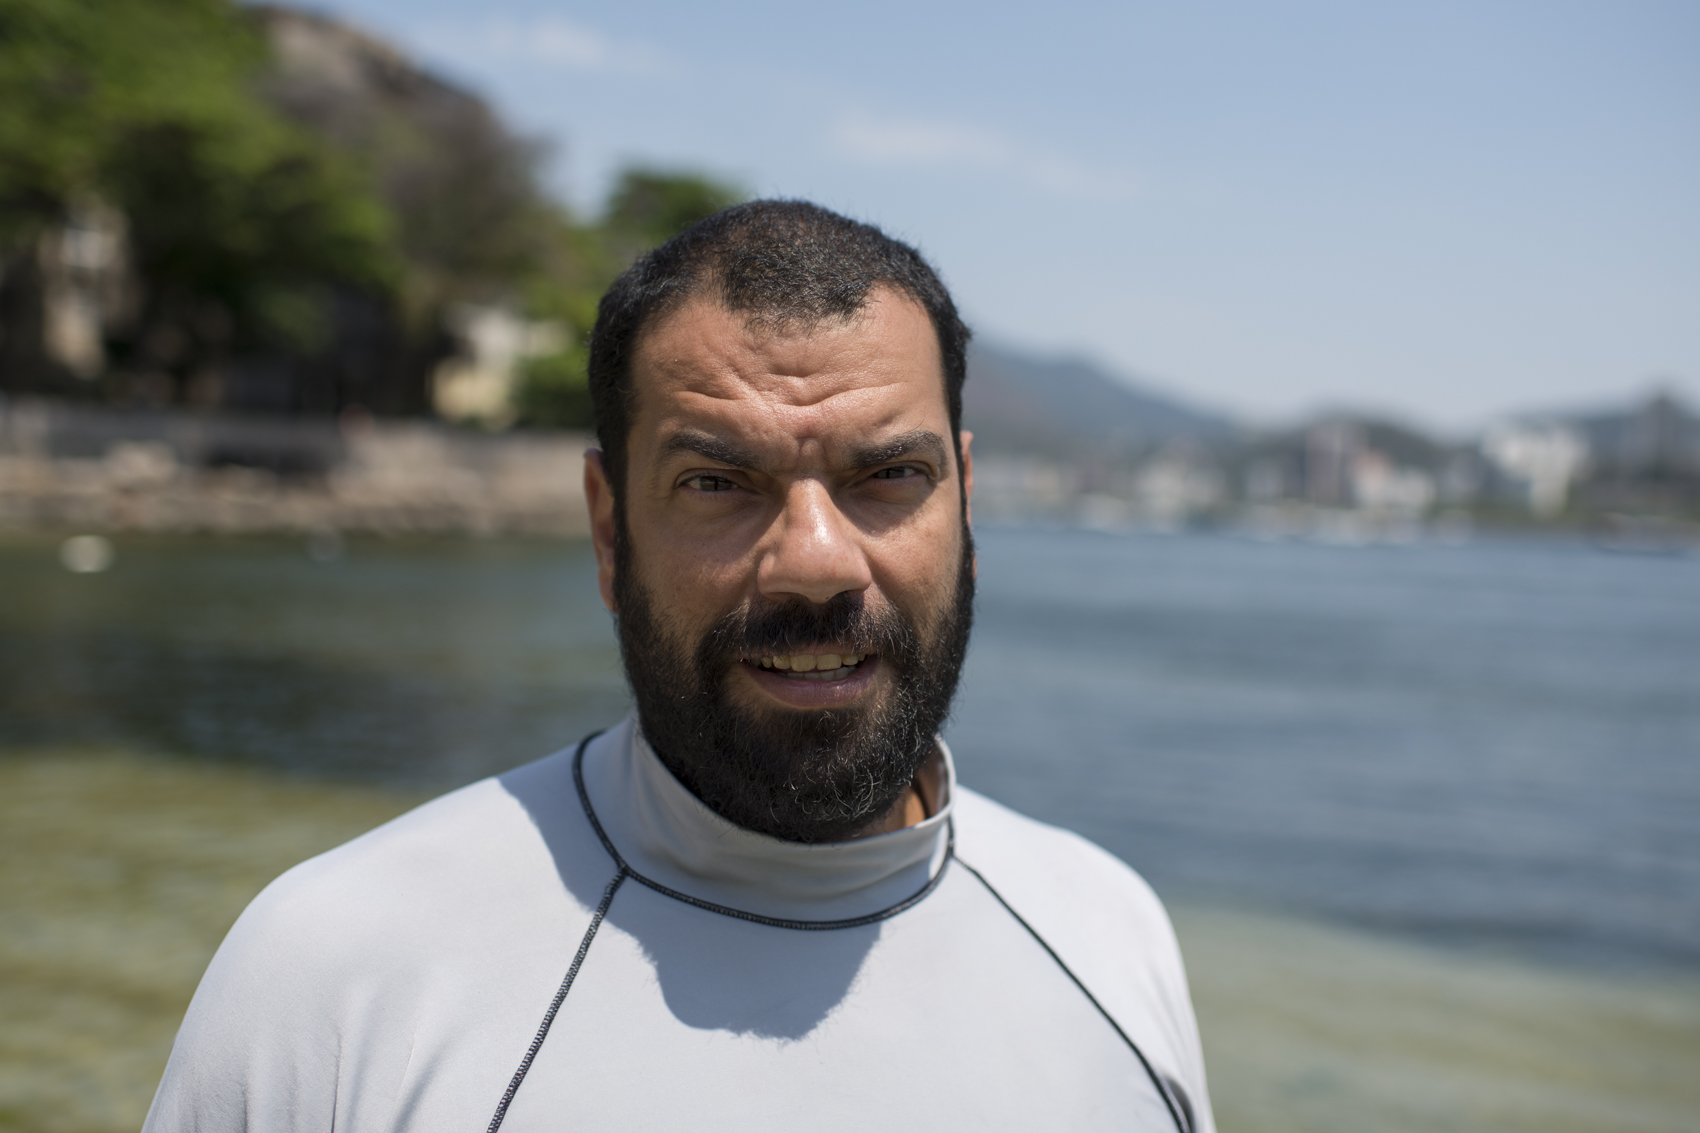 For the last 33 years, Ed dives at Urca Beach. This experience made possible for him to create a detailed map of the bottom of the sea, and a complete catalog of species that live there, all in his head. The environmentalist and educator made the place his lab and classroom. Besides the work he does in the water, he also give environmental education classes. This way, many locals and tourists that go to Urca Beach have been made aware of the effects of the trash on the environment, and how to properly dispose their waste.